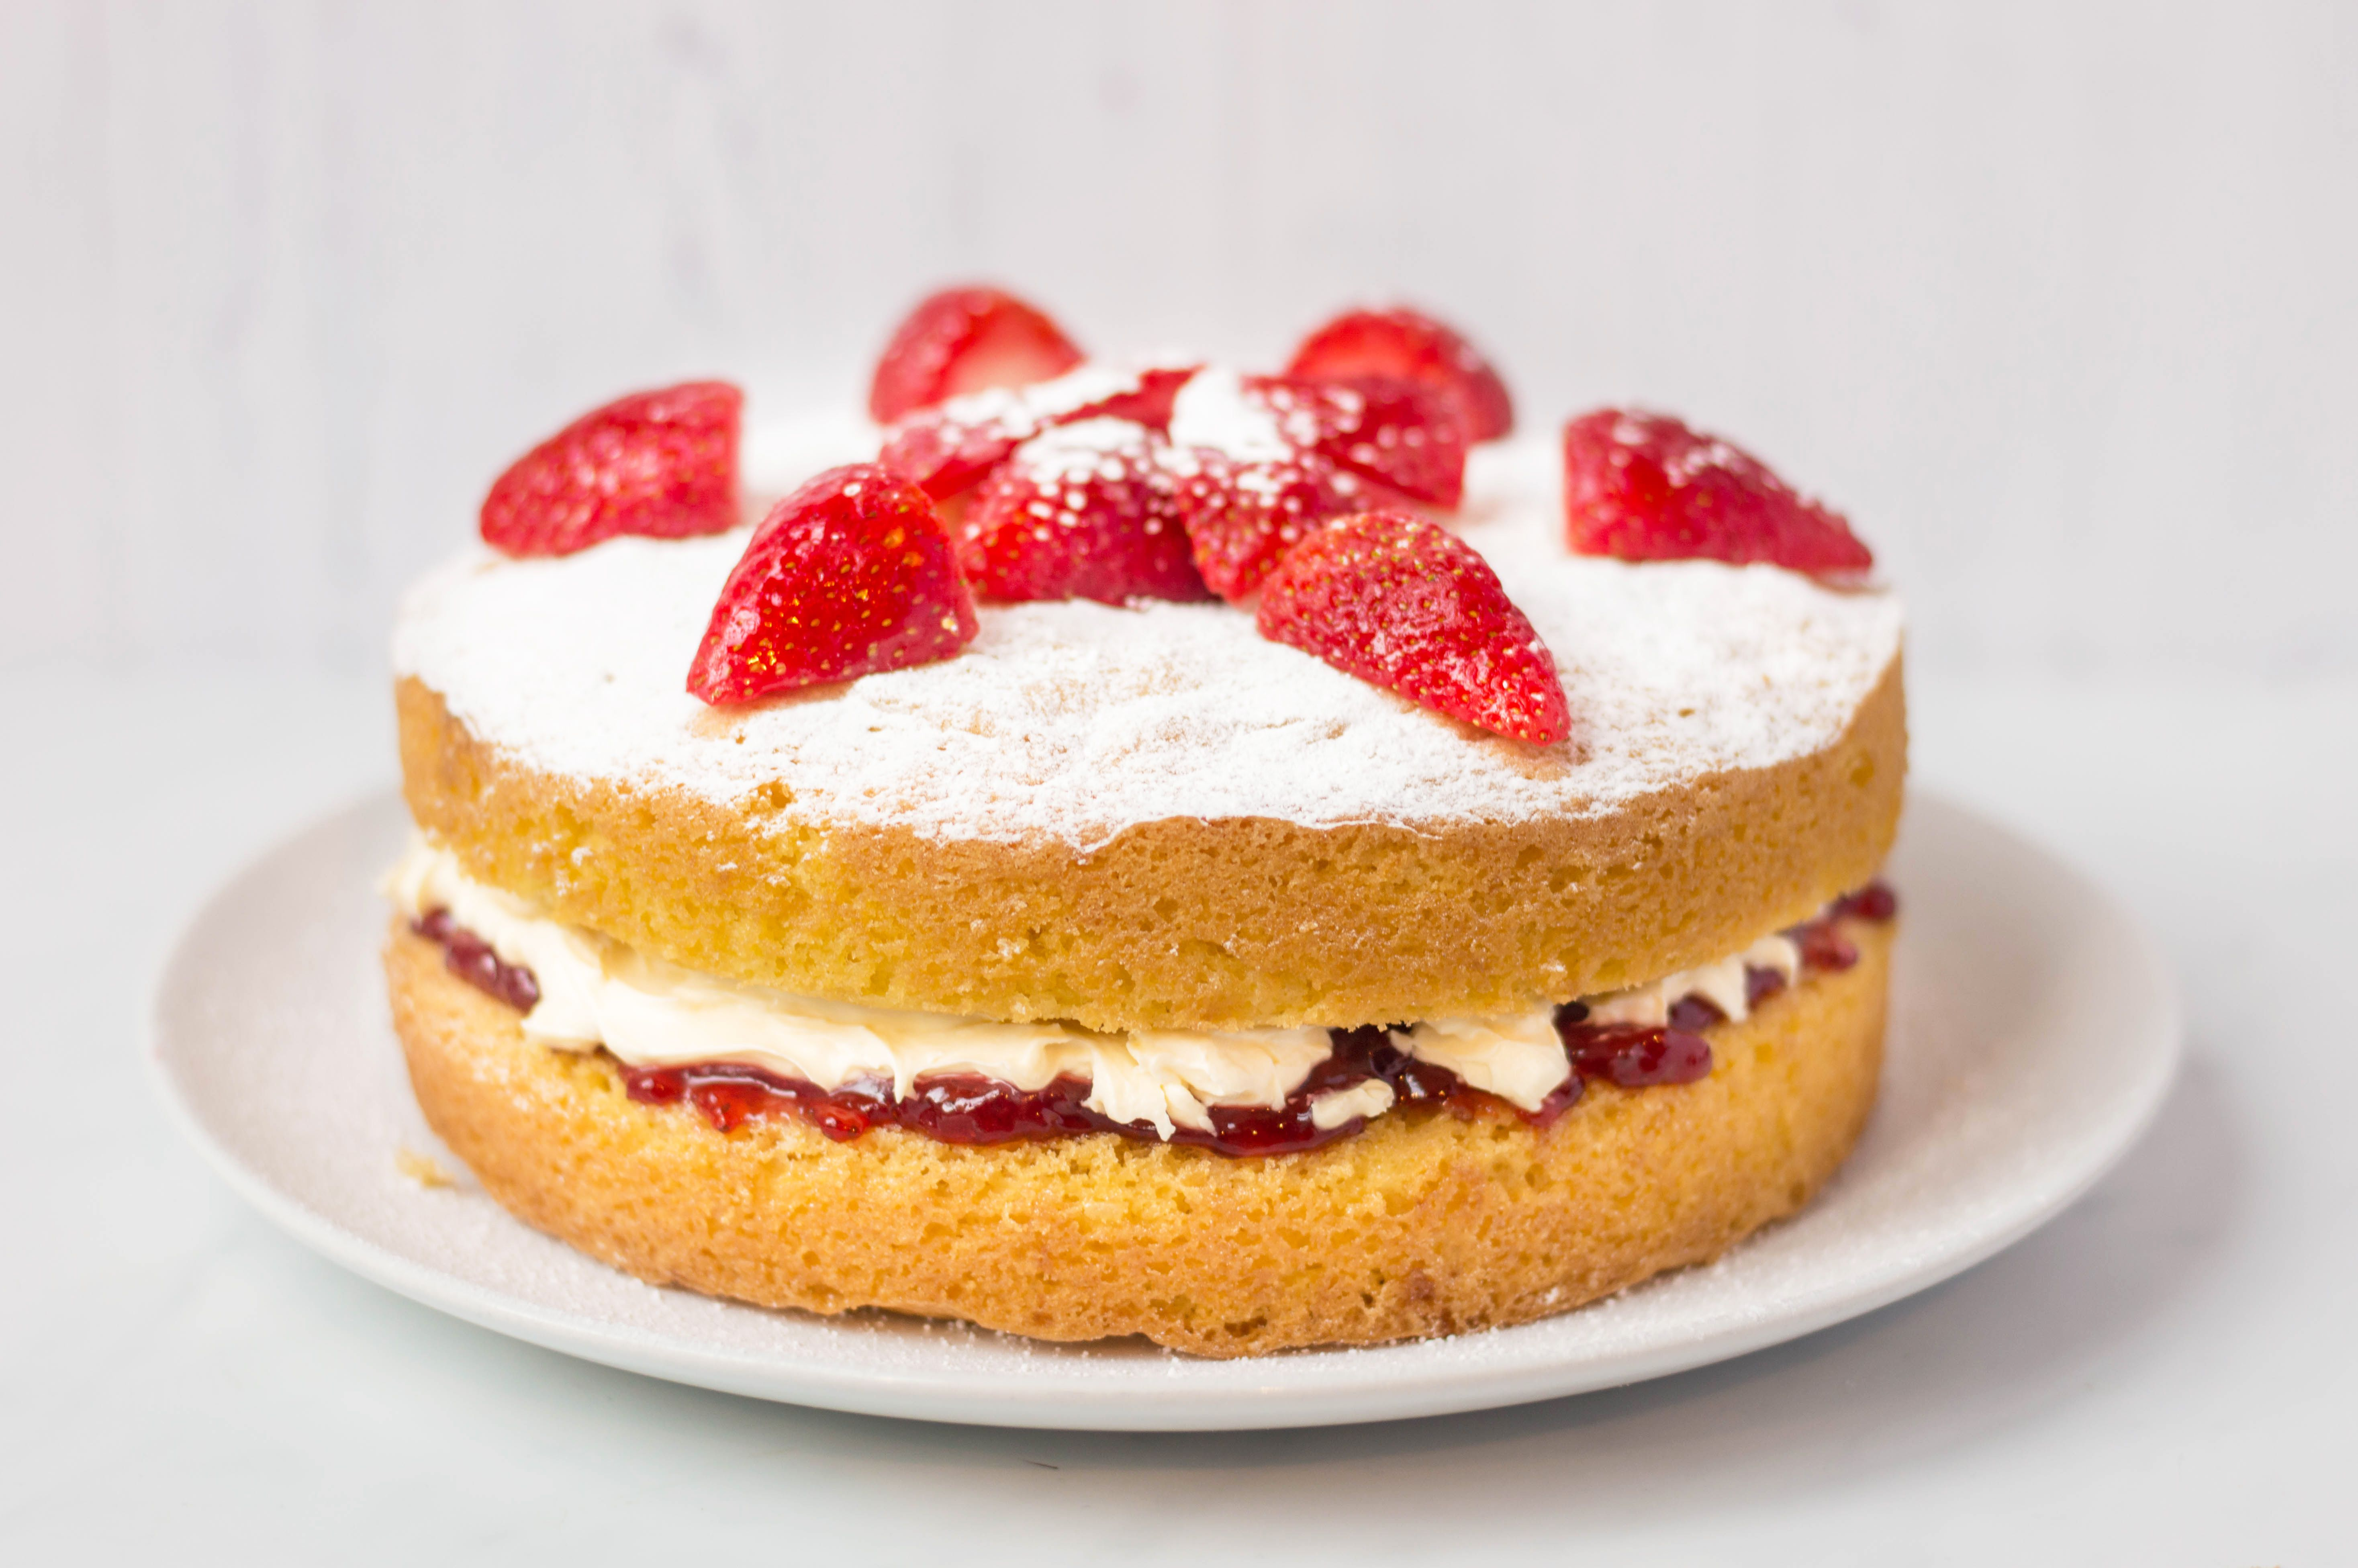 Victoria sponge cake topped with confectioner's sugar and strawberries